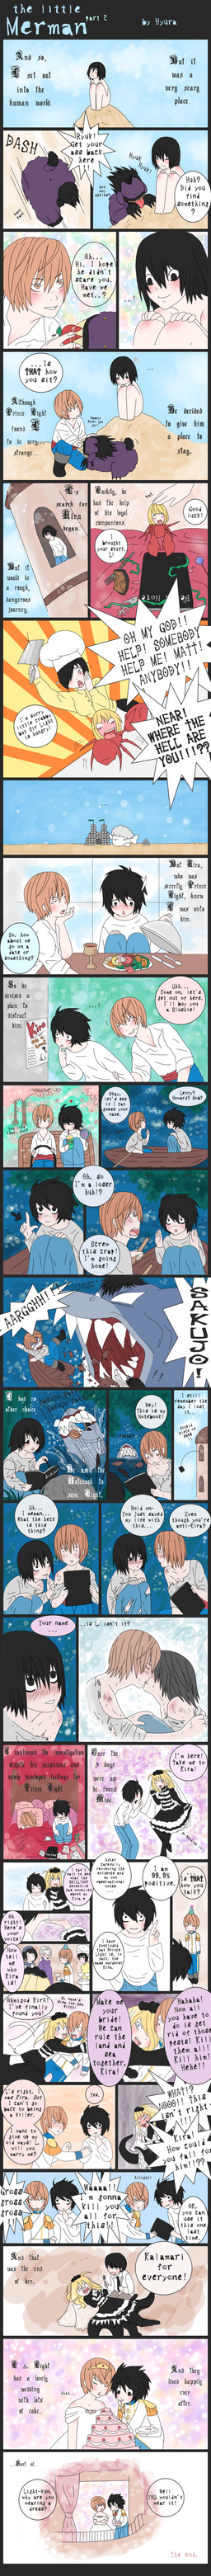 DN - The Little merman p.2 by Hyura